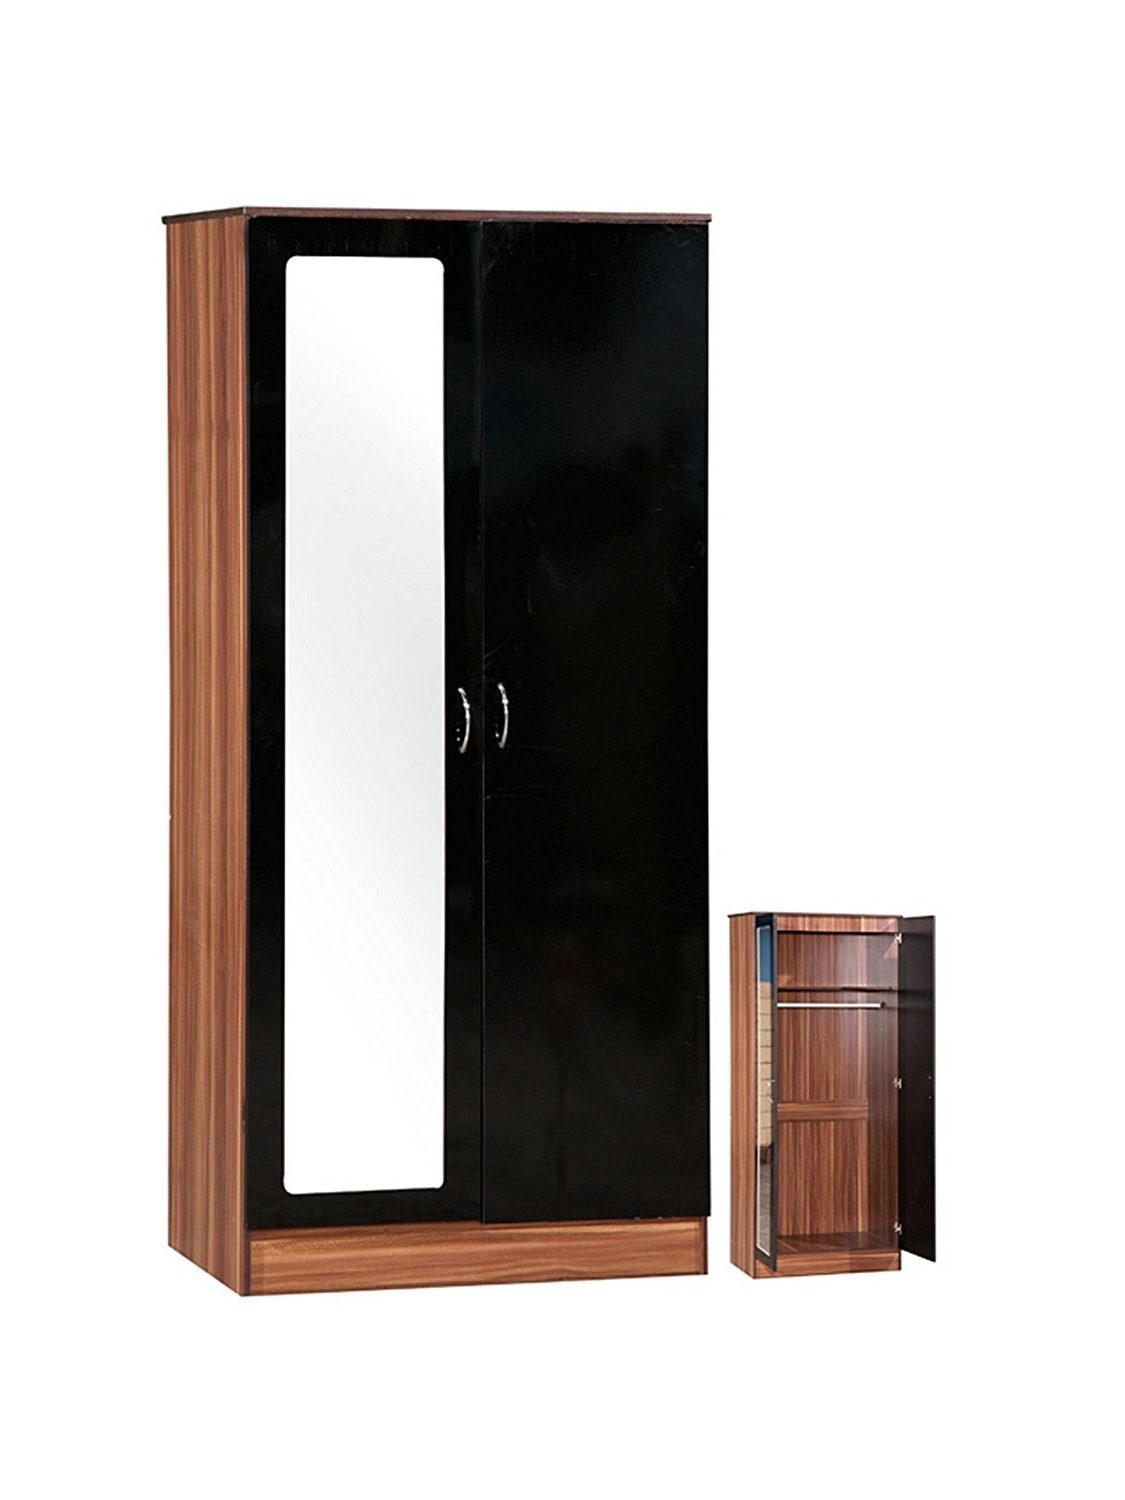 Alpha High Gloss 2 Door Wardrobe With Mirror, Shelf And Hanging Inside Trendy Black Gloss Wardrobes (View 2 of 15)